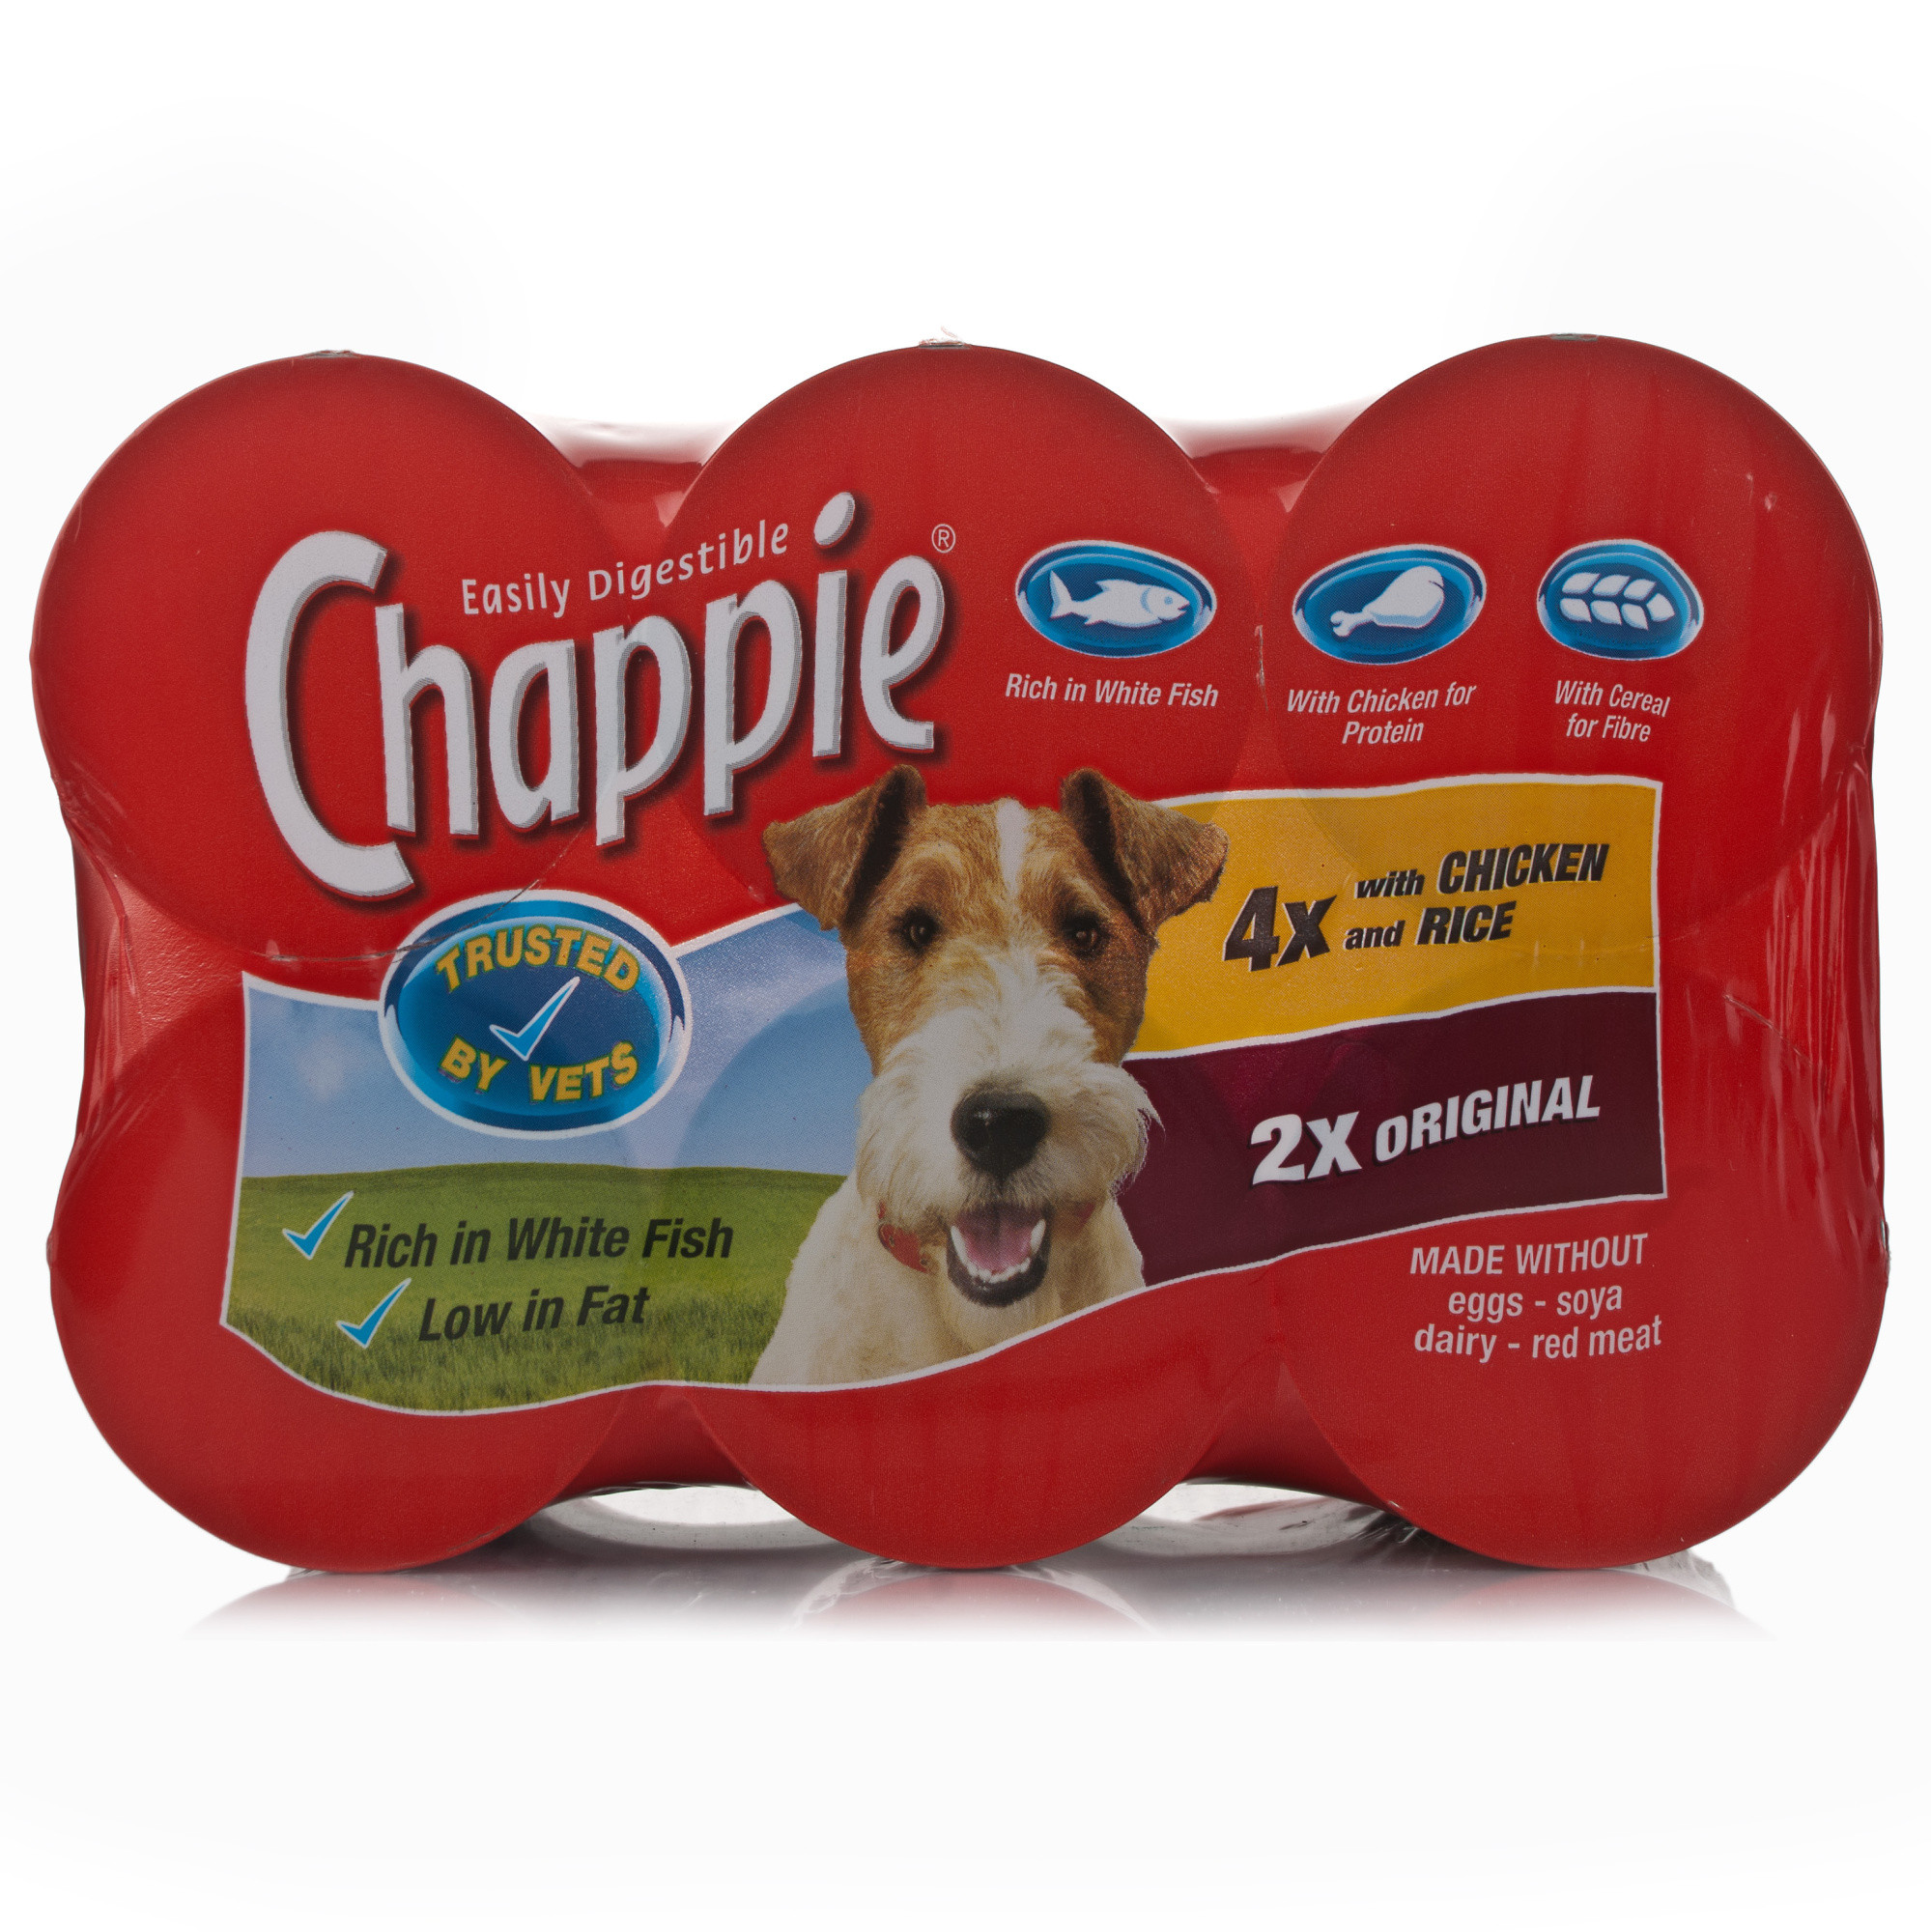 Chappie Dog Food Best Price